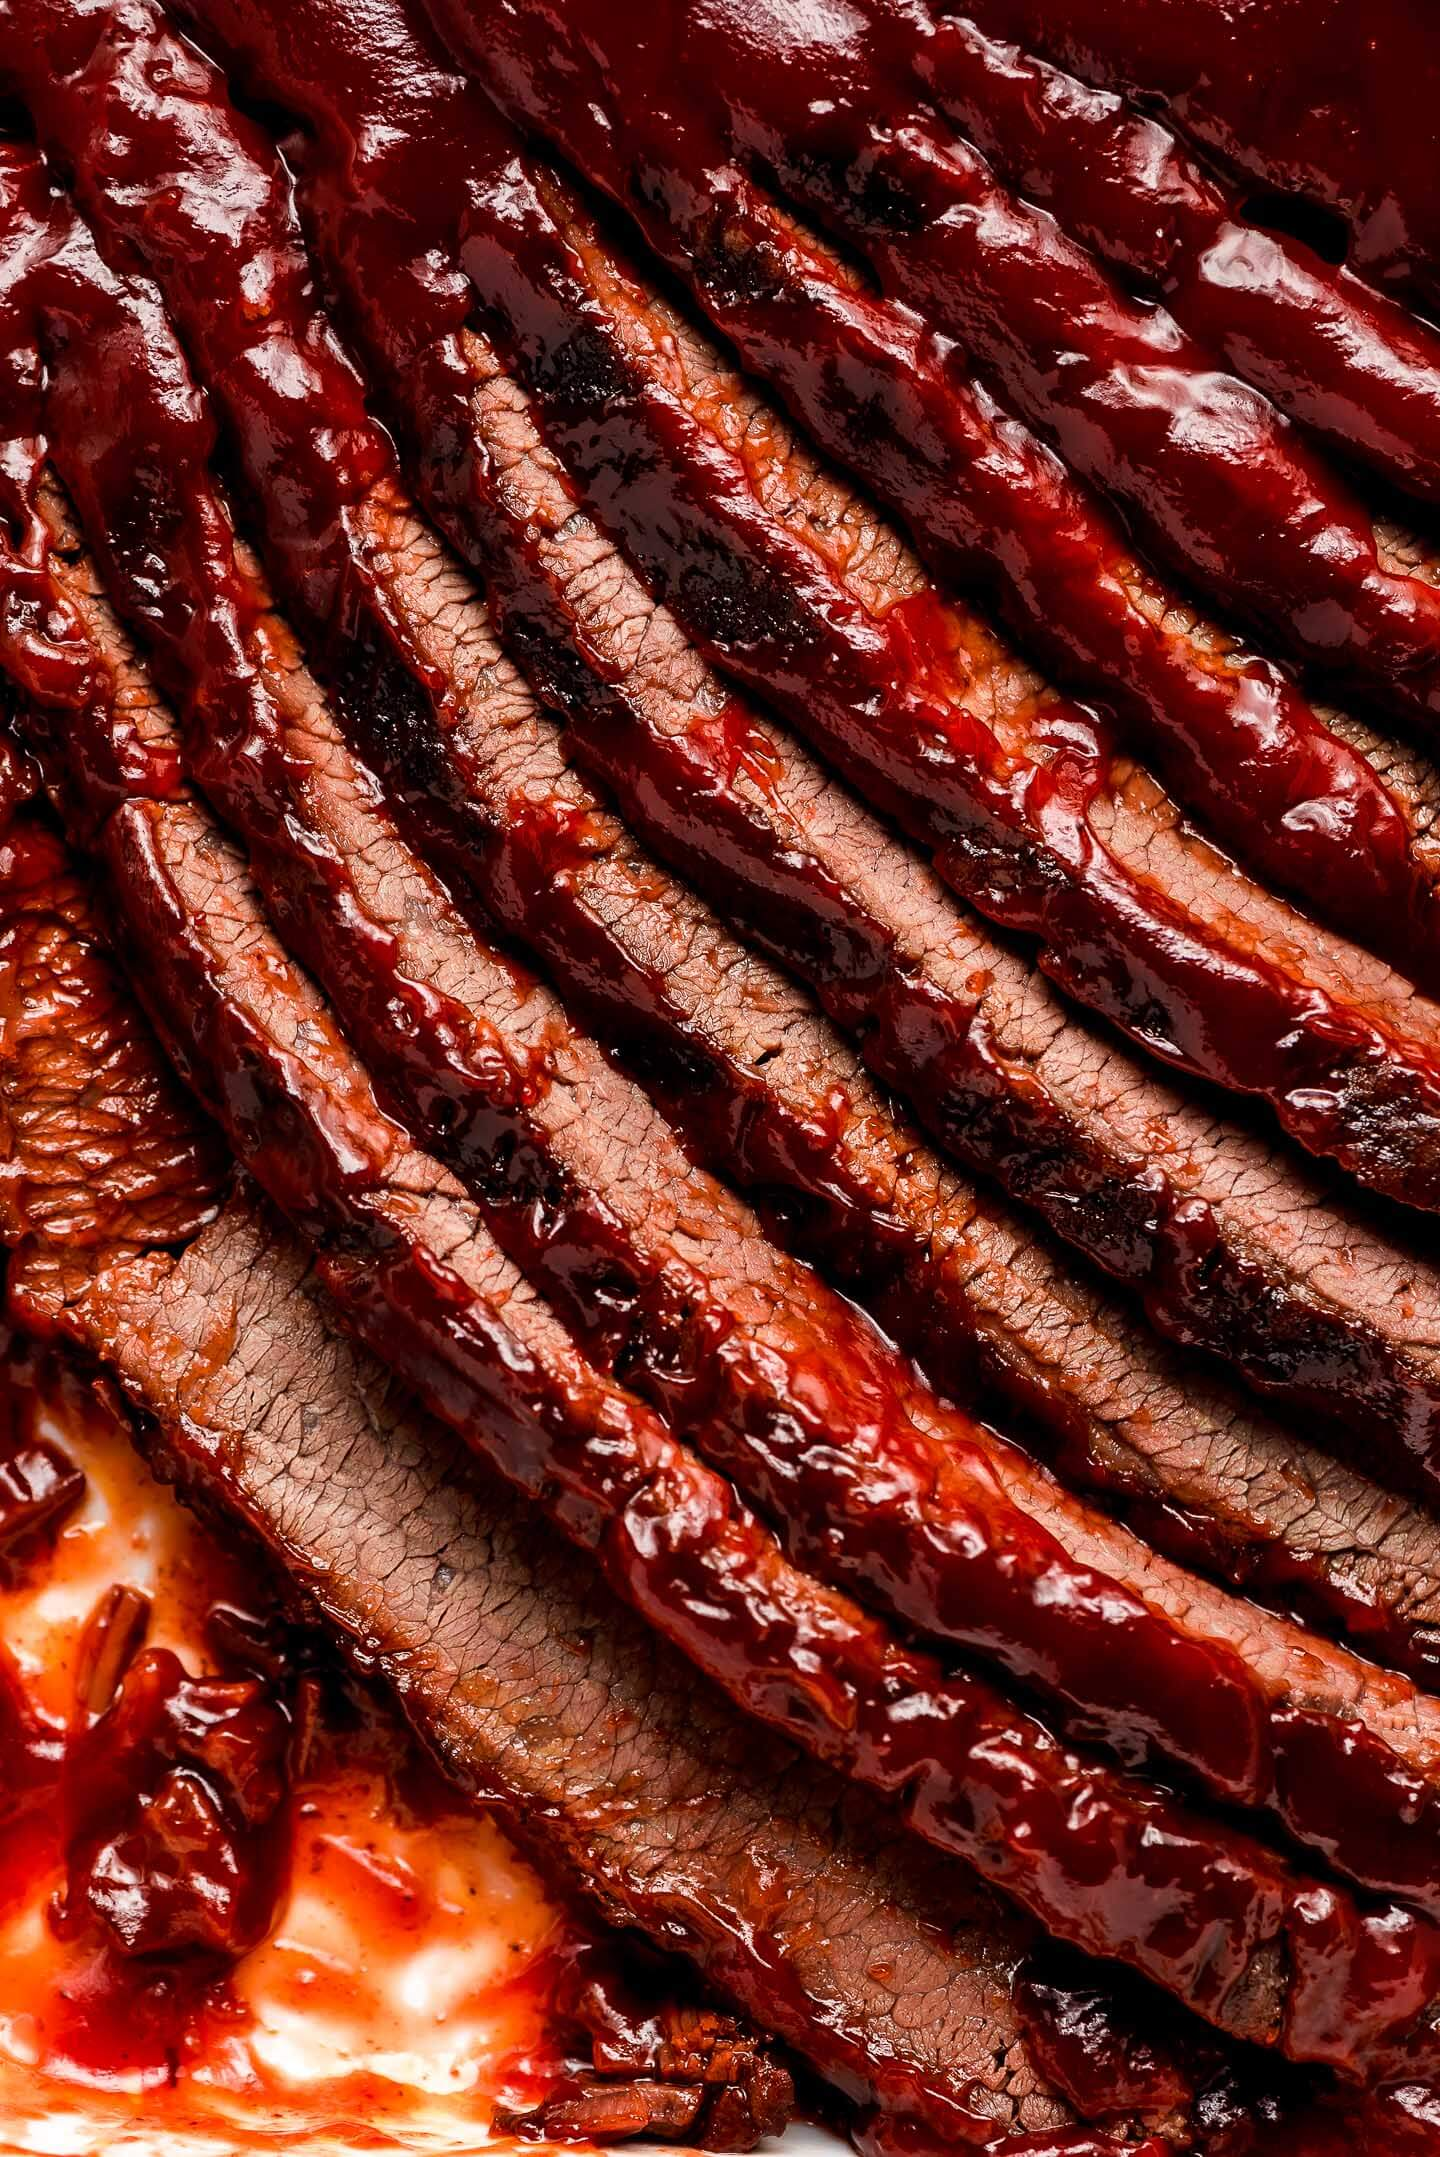 Slices of brisket in a pan covered in barbecue sauce.